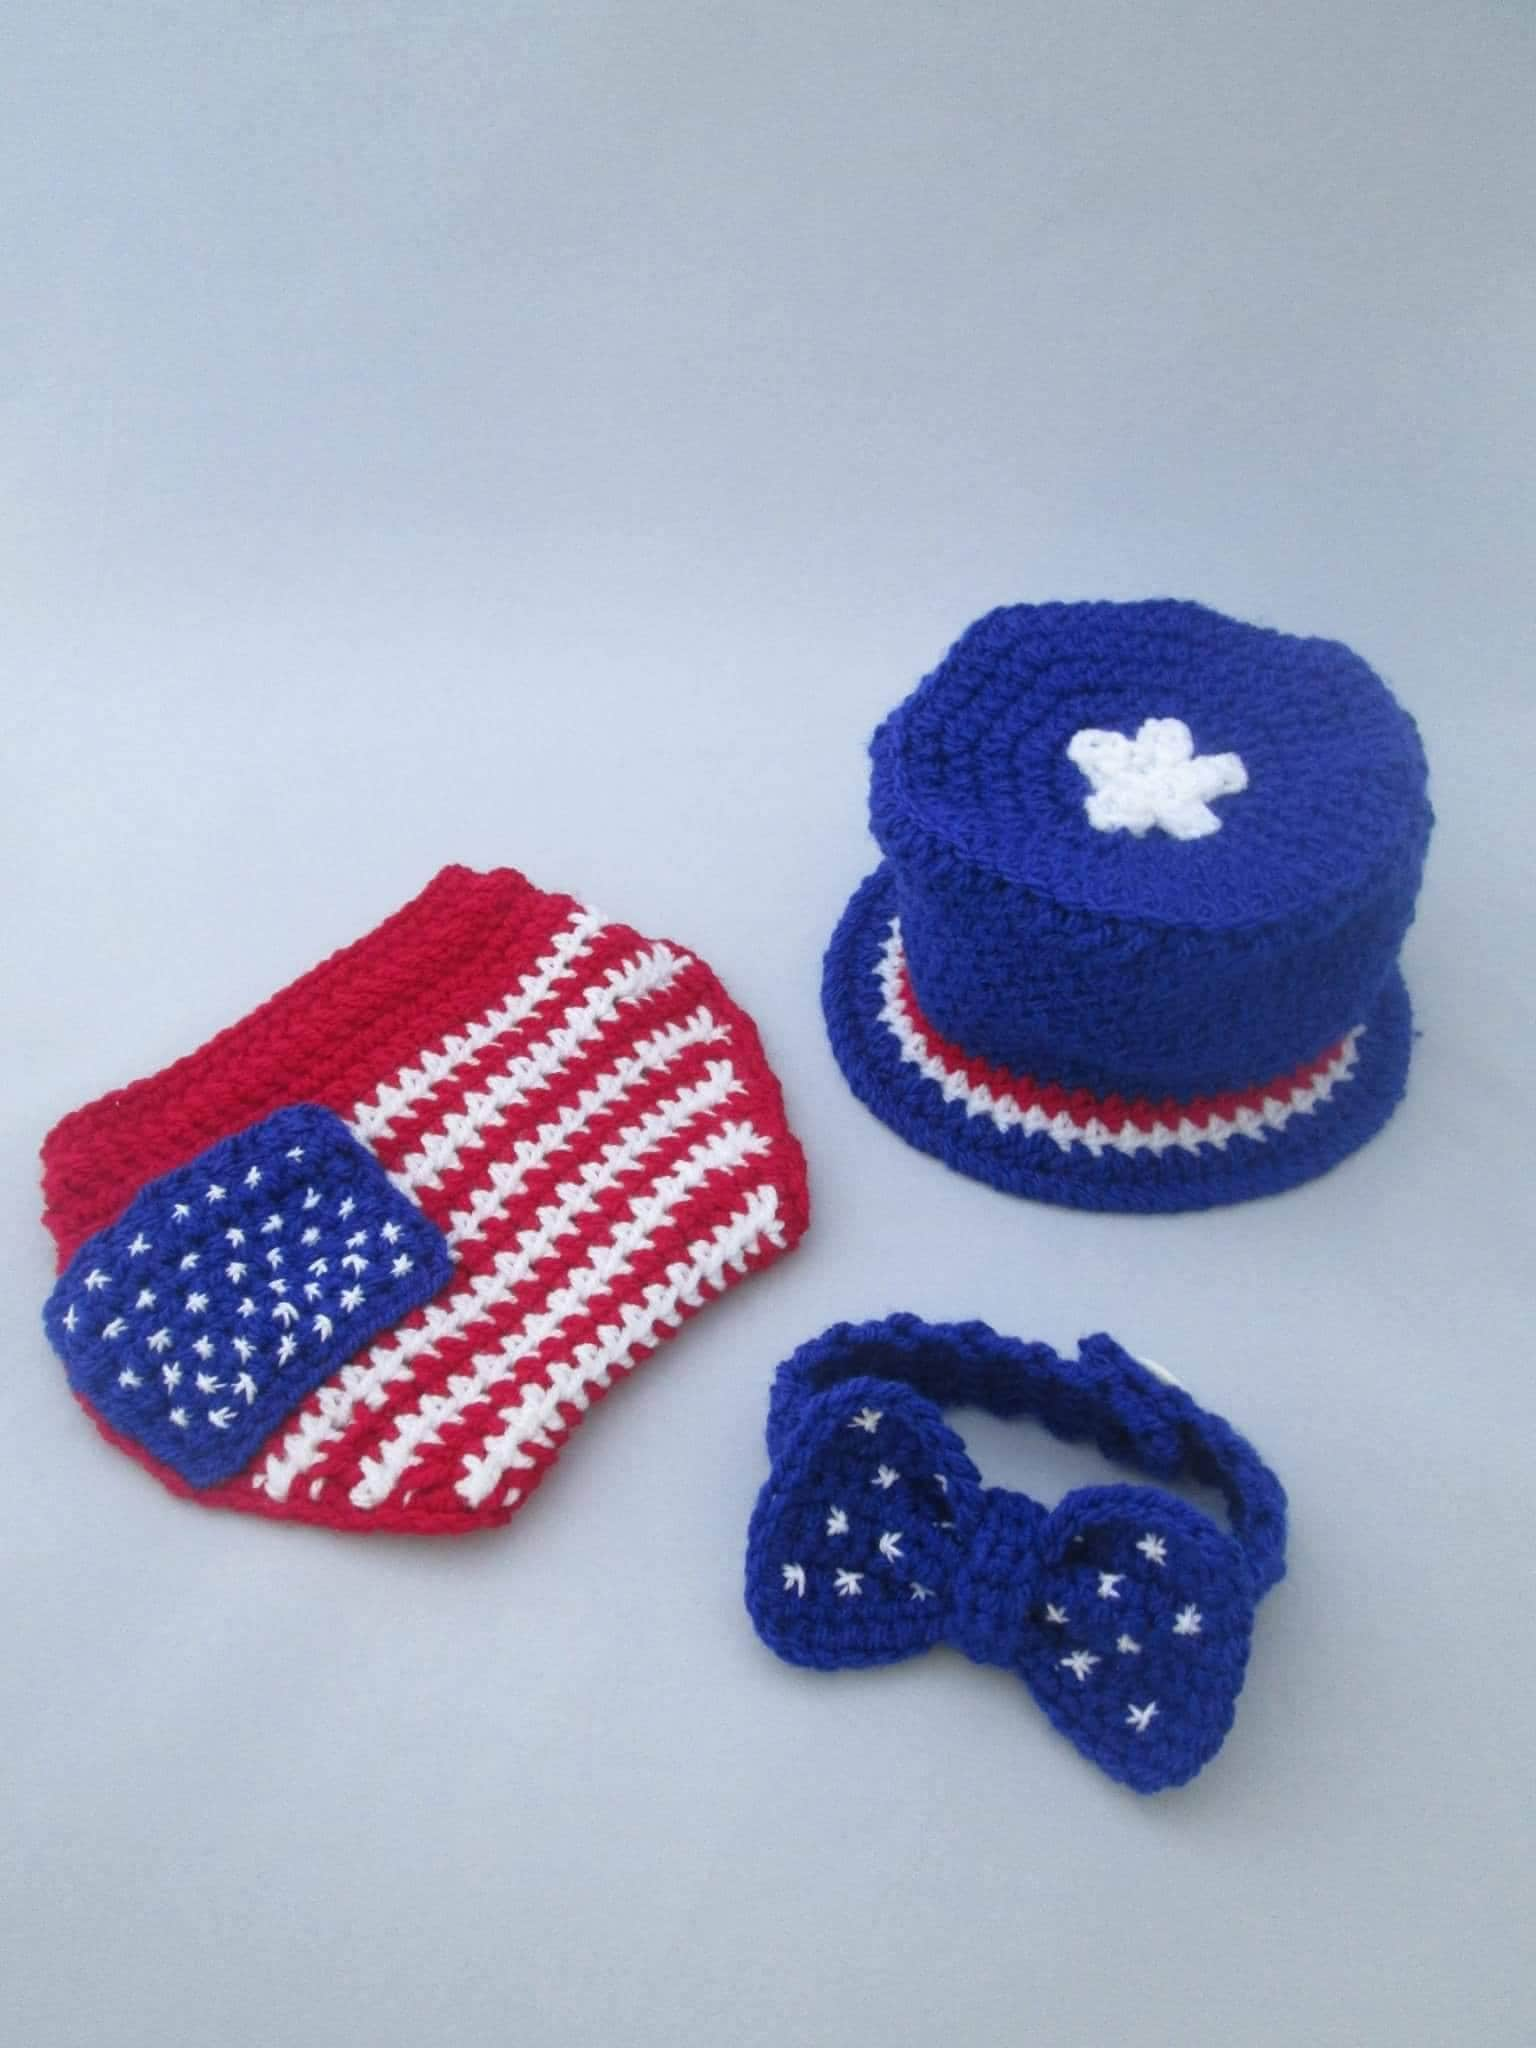 Newborn Baby July 4th Uncle Sam Top Hat and Diaper Cover-Hand Crochet-Photo Prop